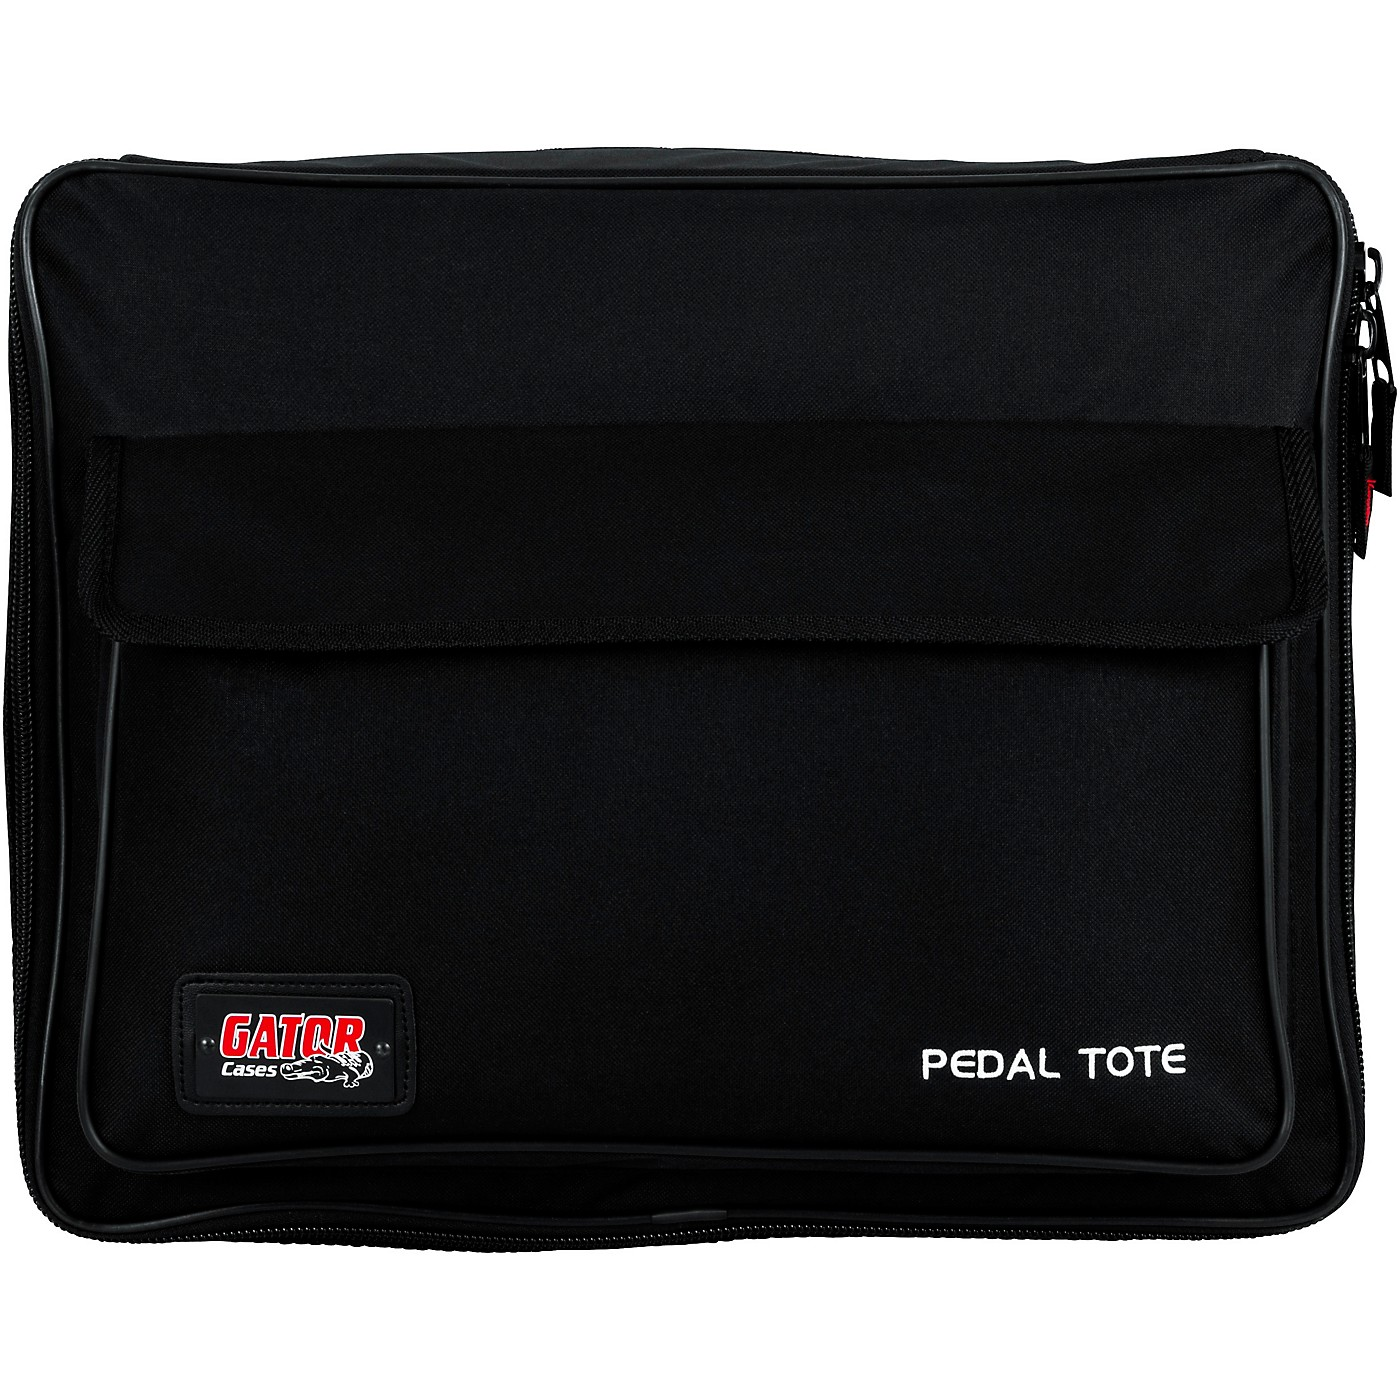 Gator GPT Pedal Tote Pedal Board with Carry Bag thumbnail